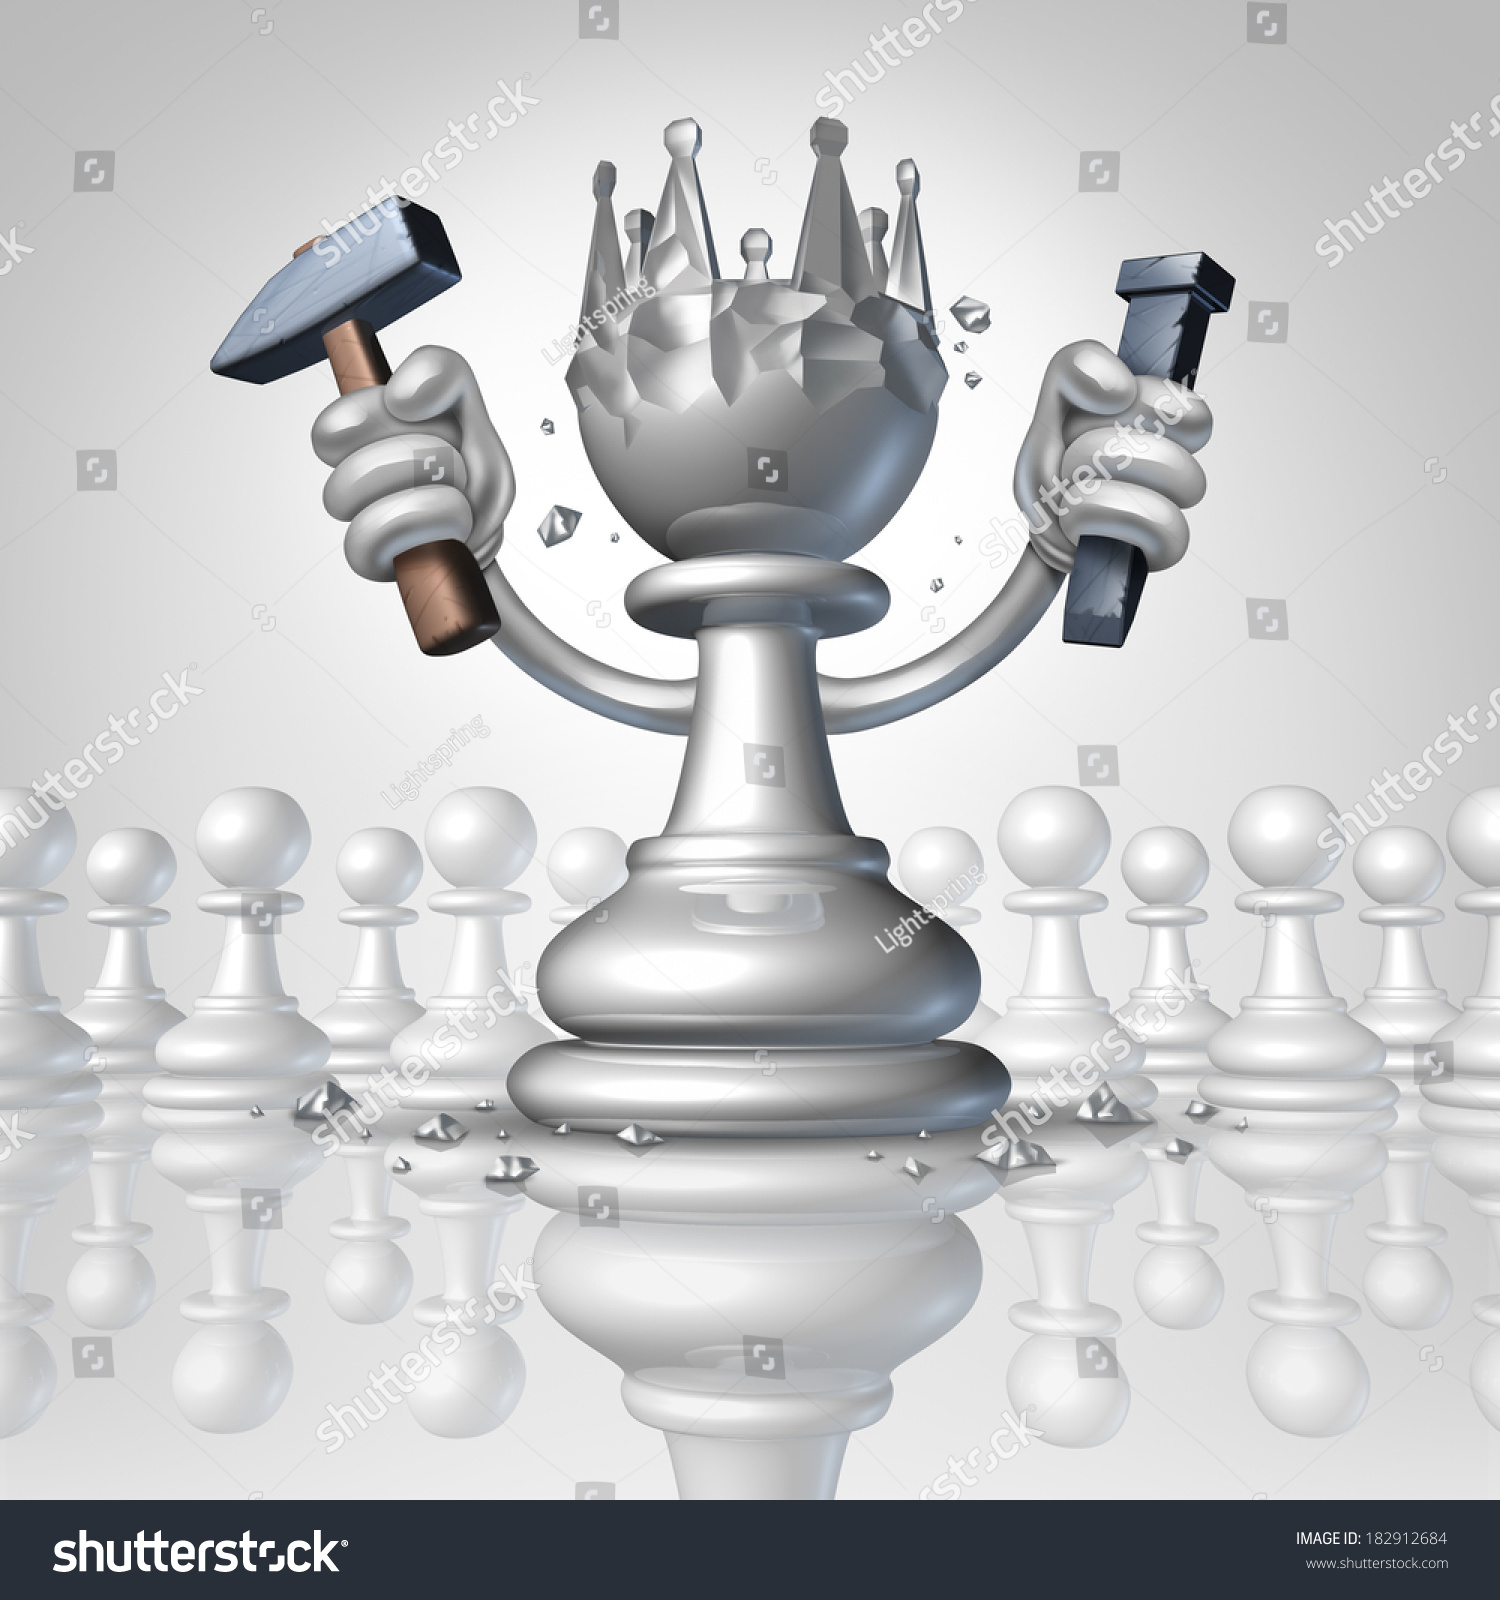 Power To Change Personal Growth Concept With A Chess Pawn Using A Hammer And Chisel Sculpting A King Crown From His Body As A Business Concept Of ...